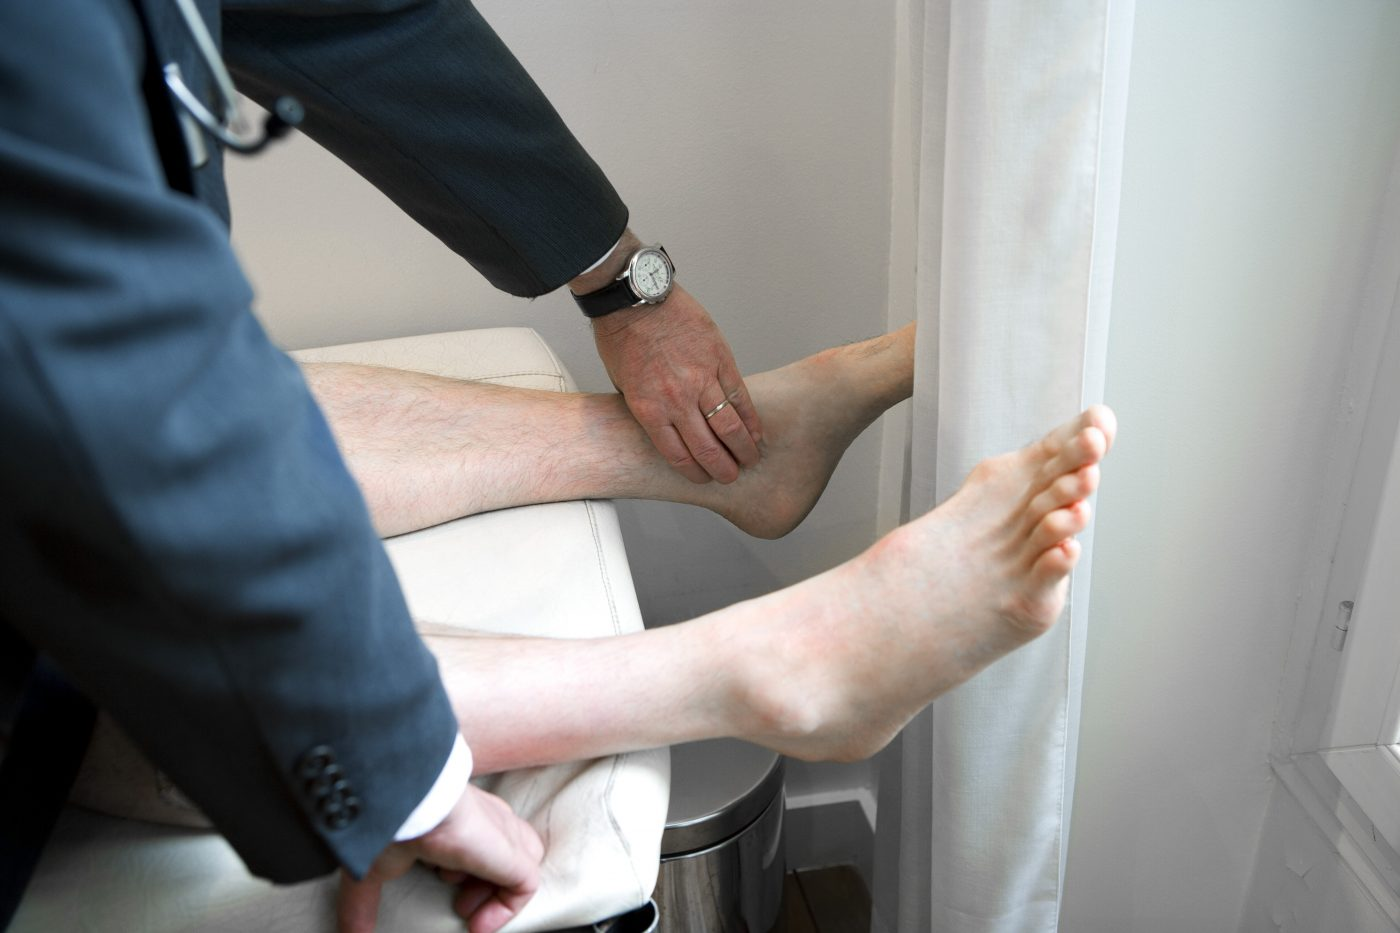 Chiropractic Care May Help Control Peripheral Neuropathy in Diabetics